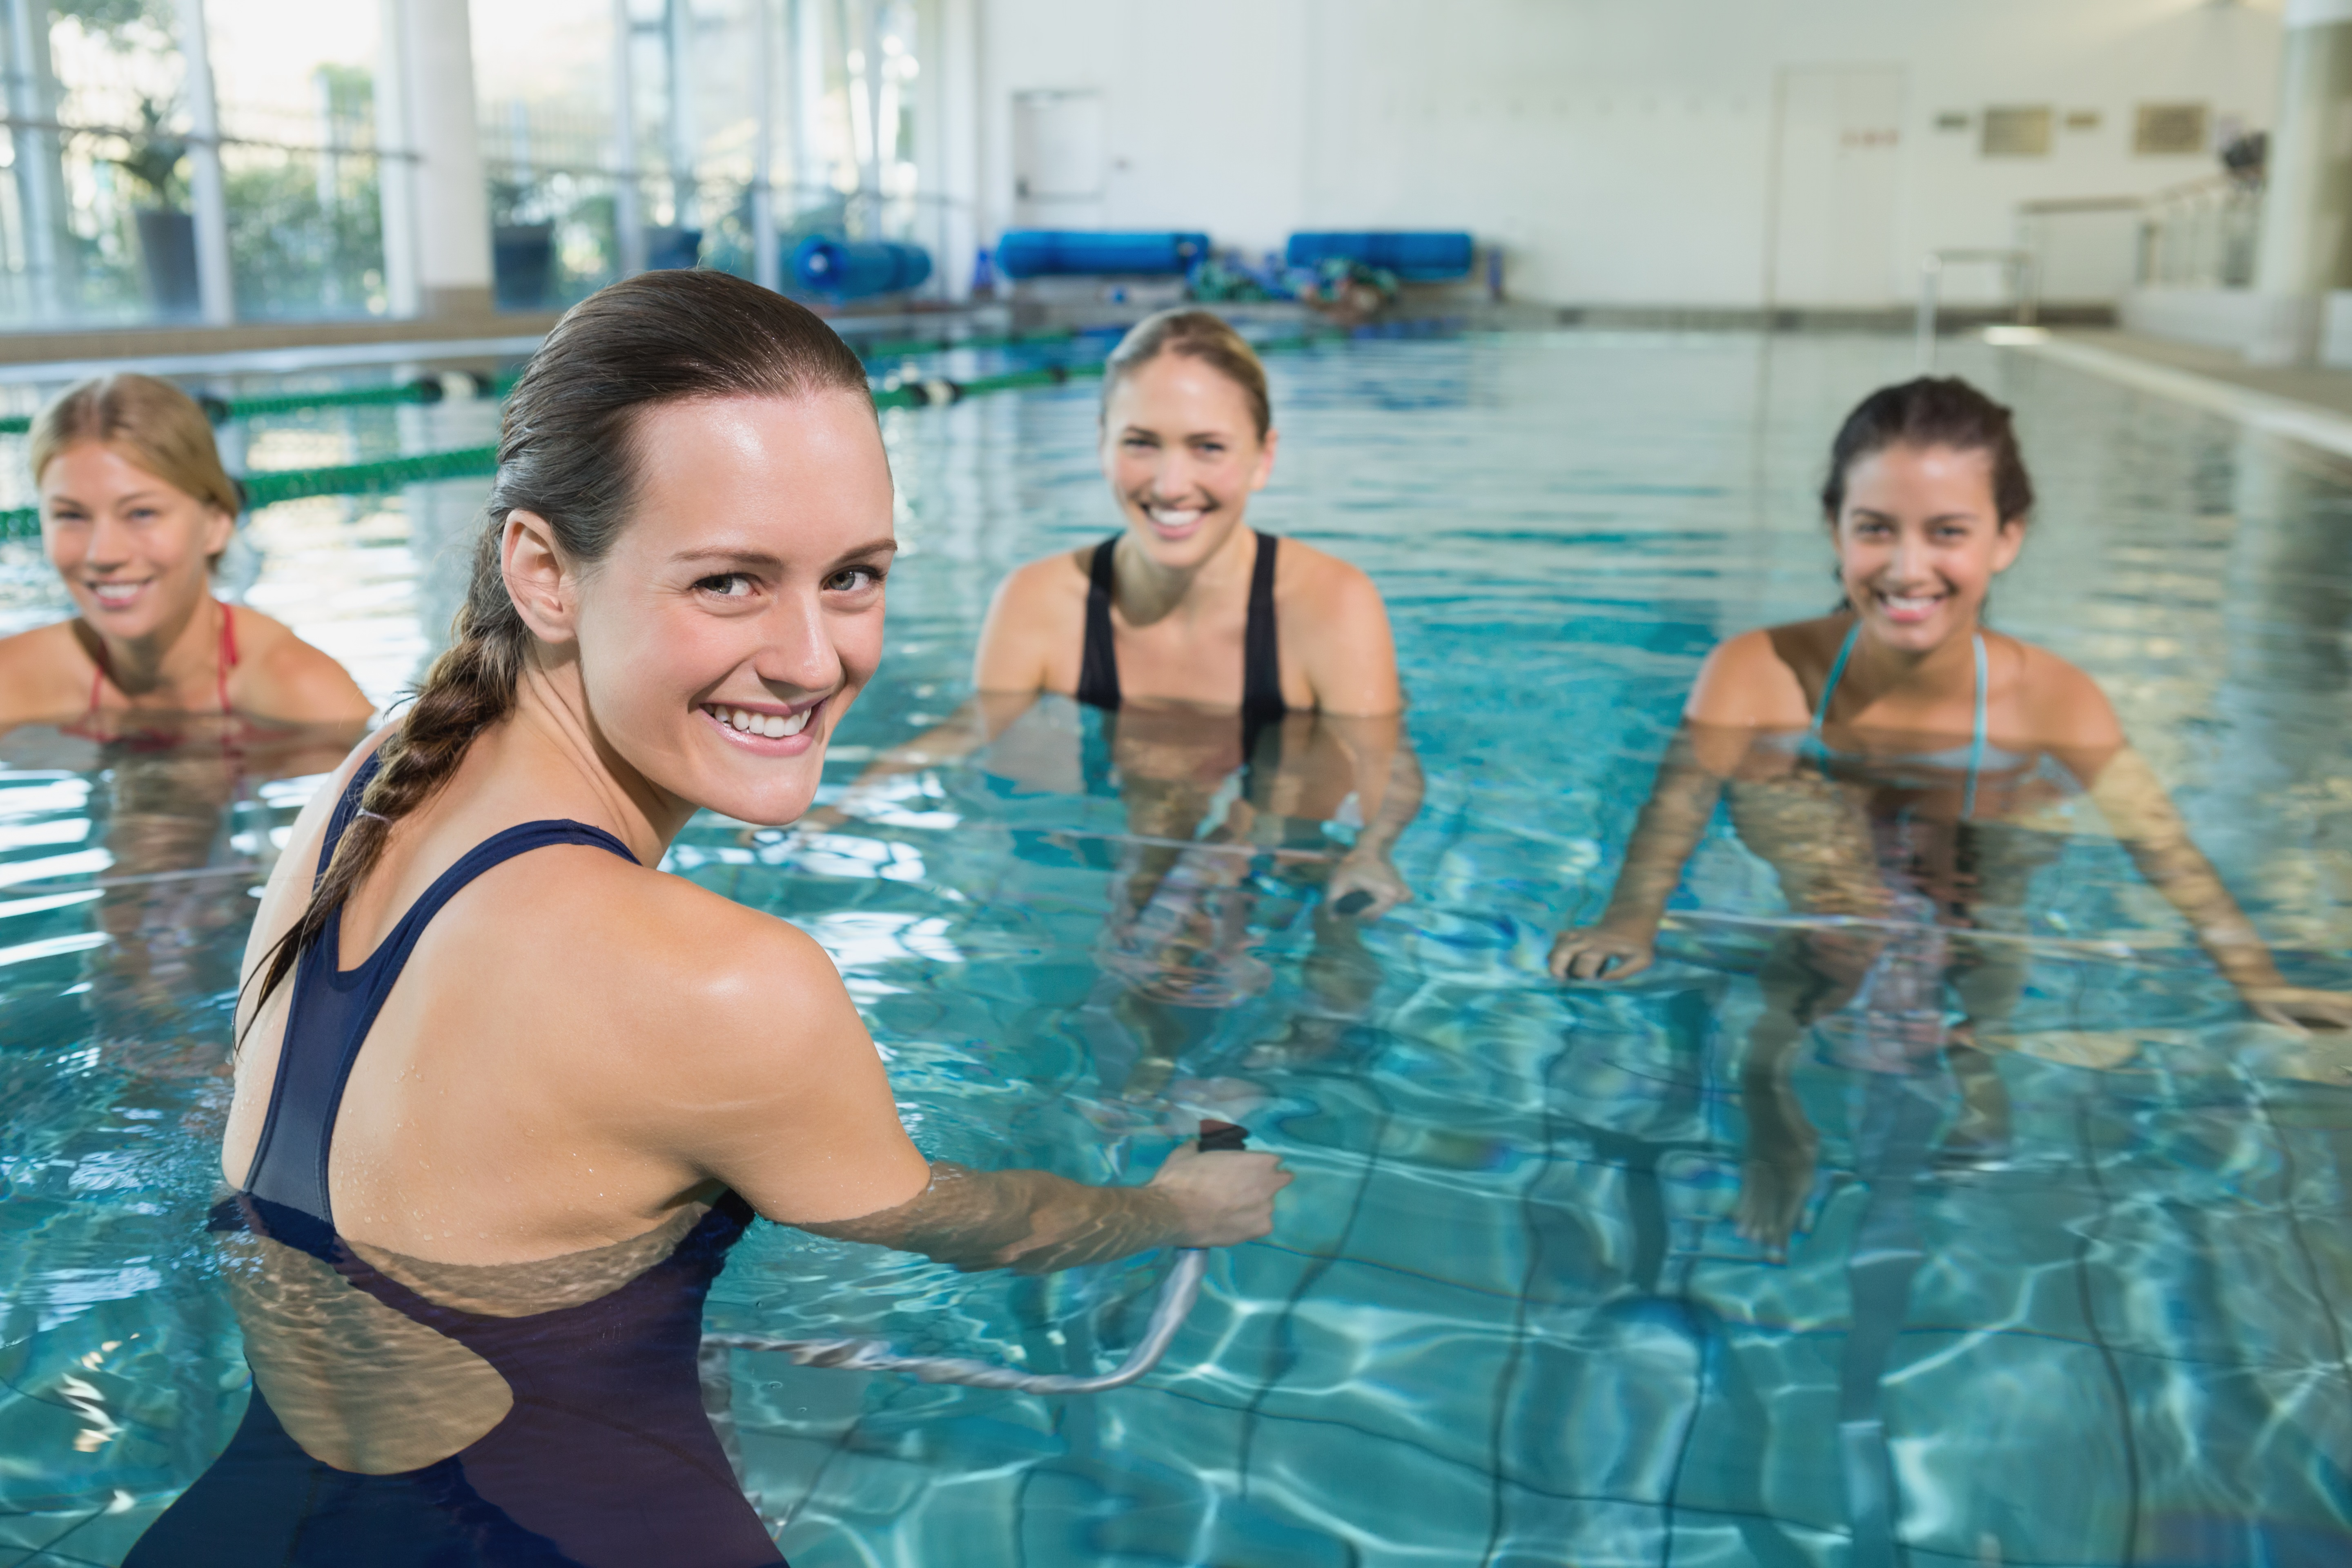 Aquatic Aerobic Exercise Offers Therapeutic Benefits to Fibromyalgia Patients